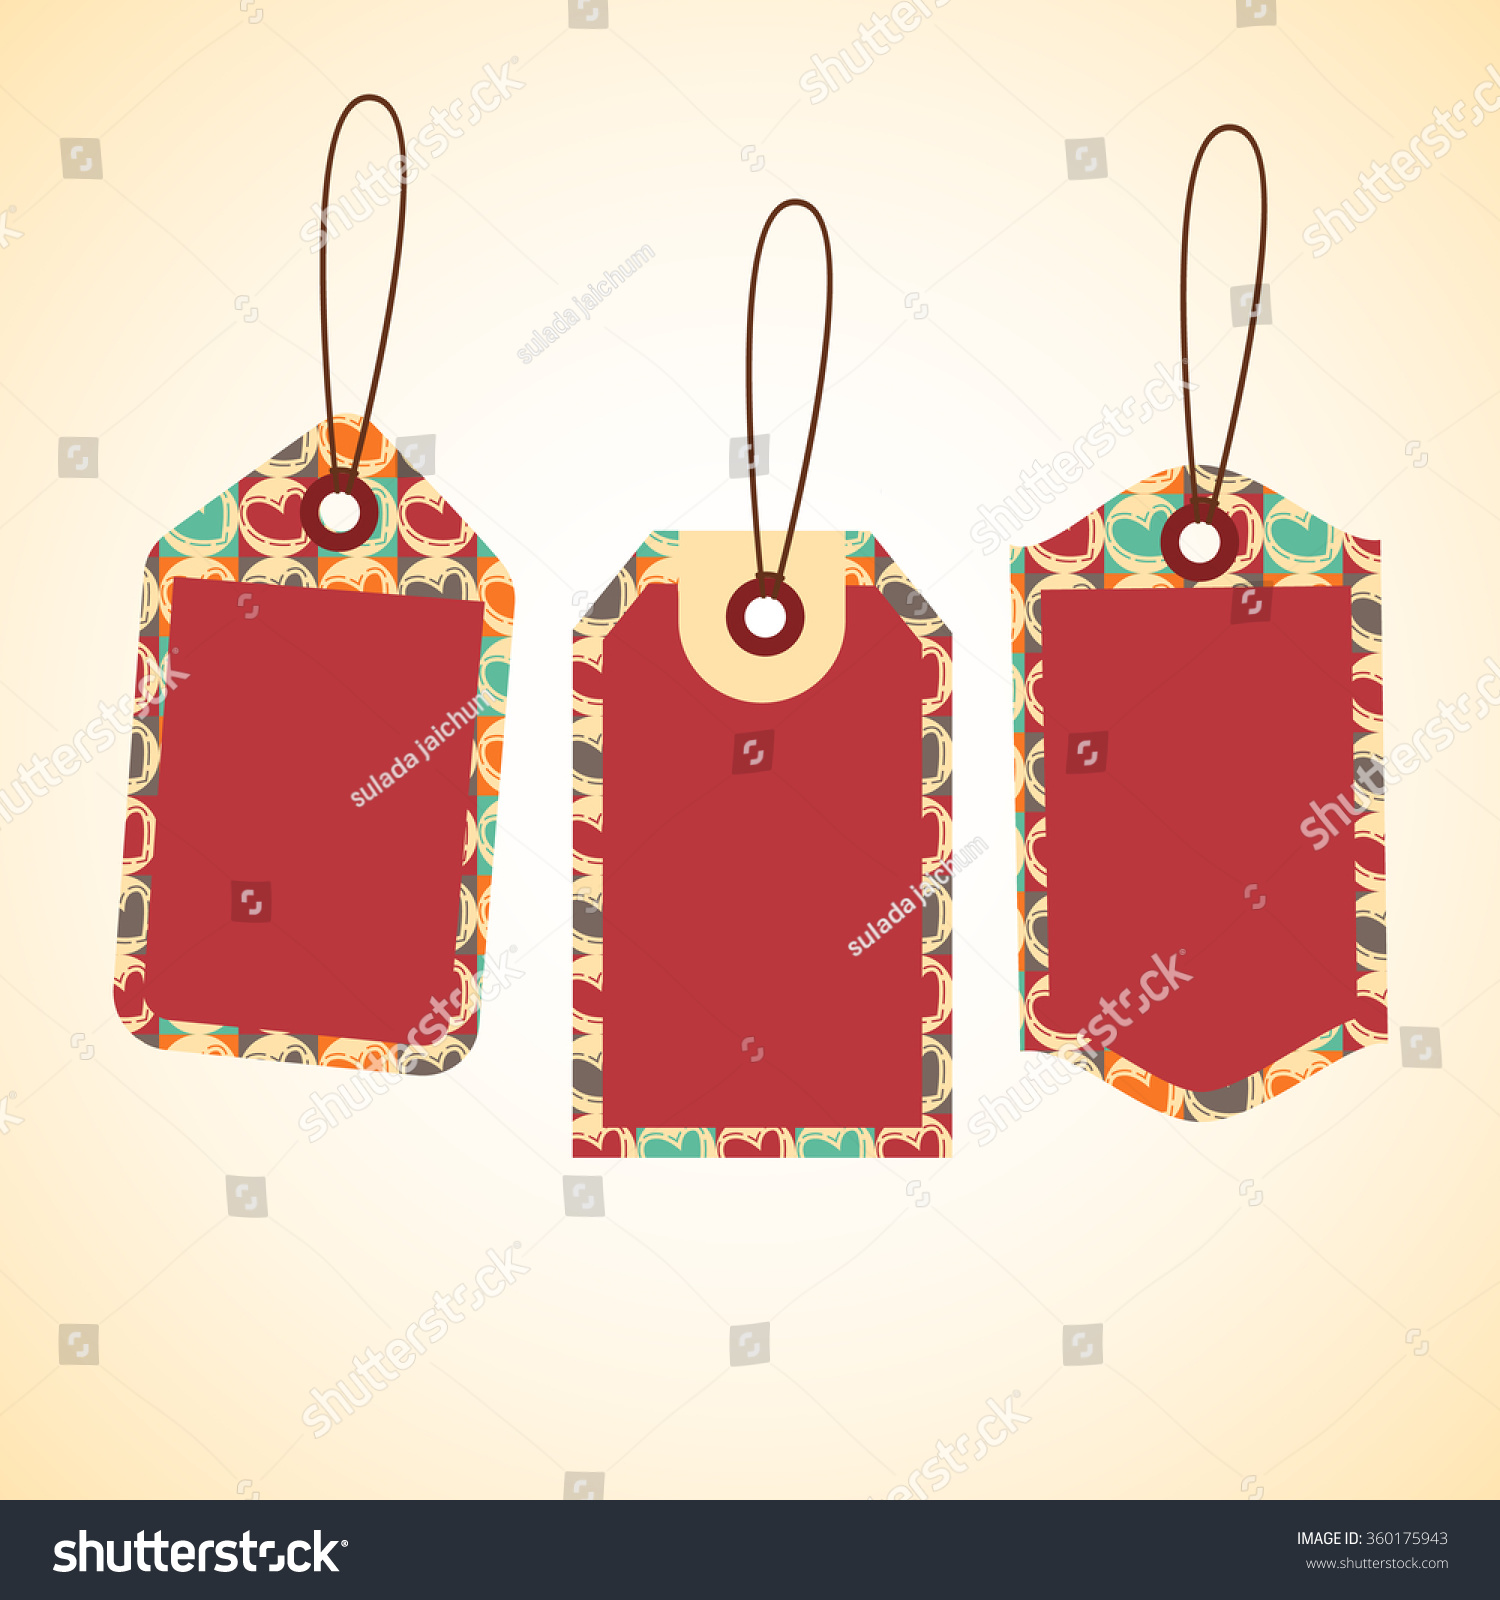 Price Tag Design Set Price Tags Stock Vector 360175943 - Shutterstock